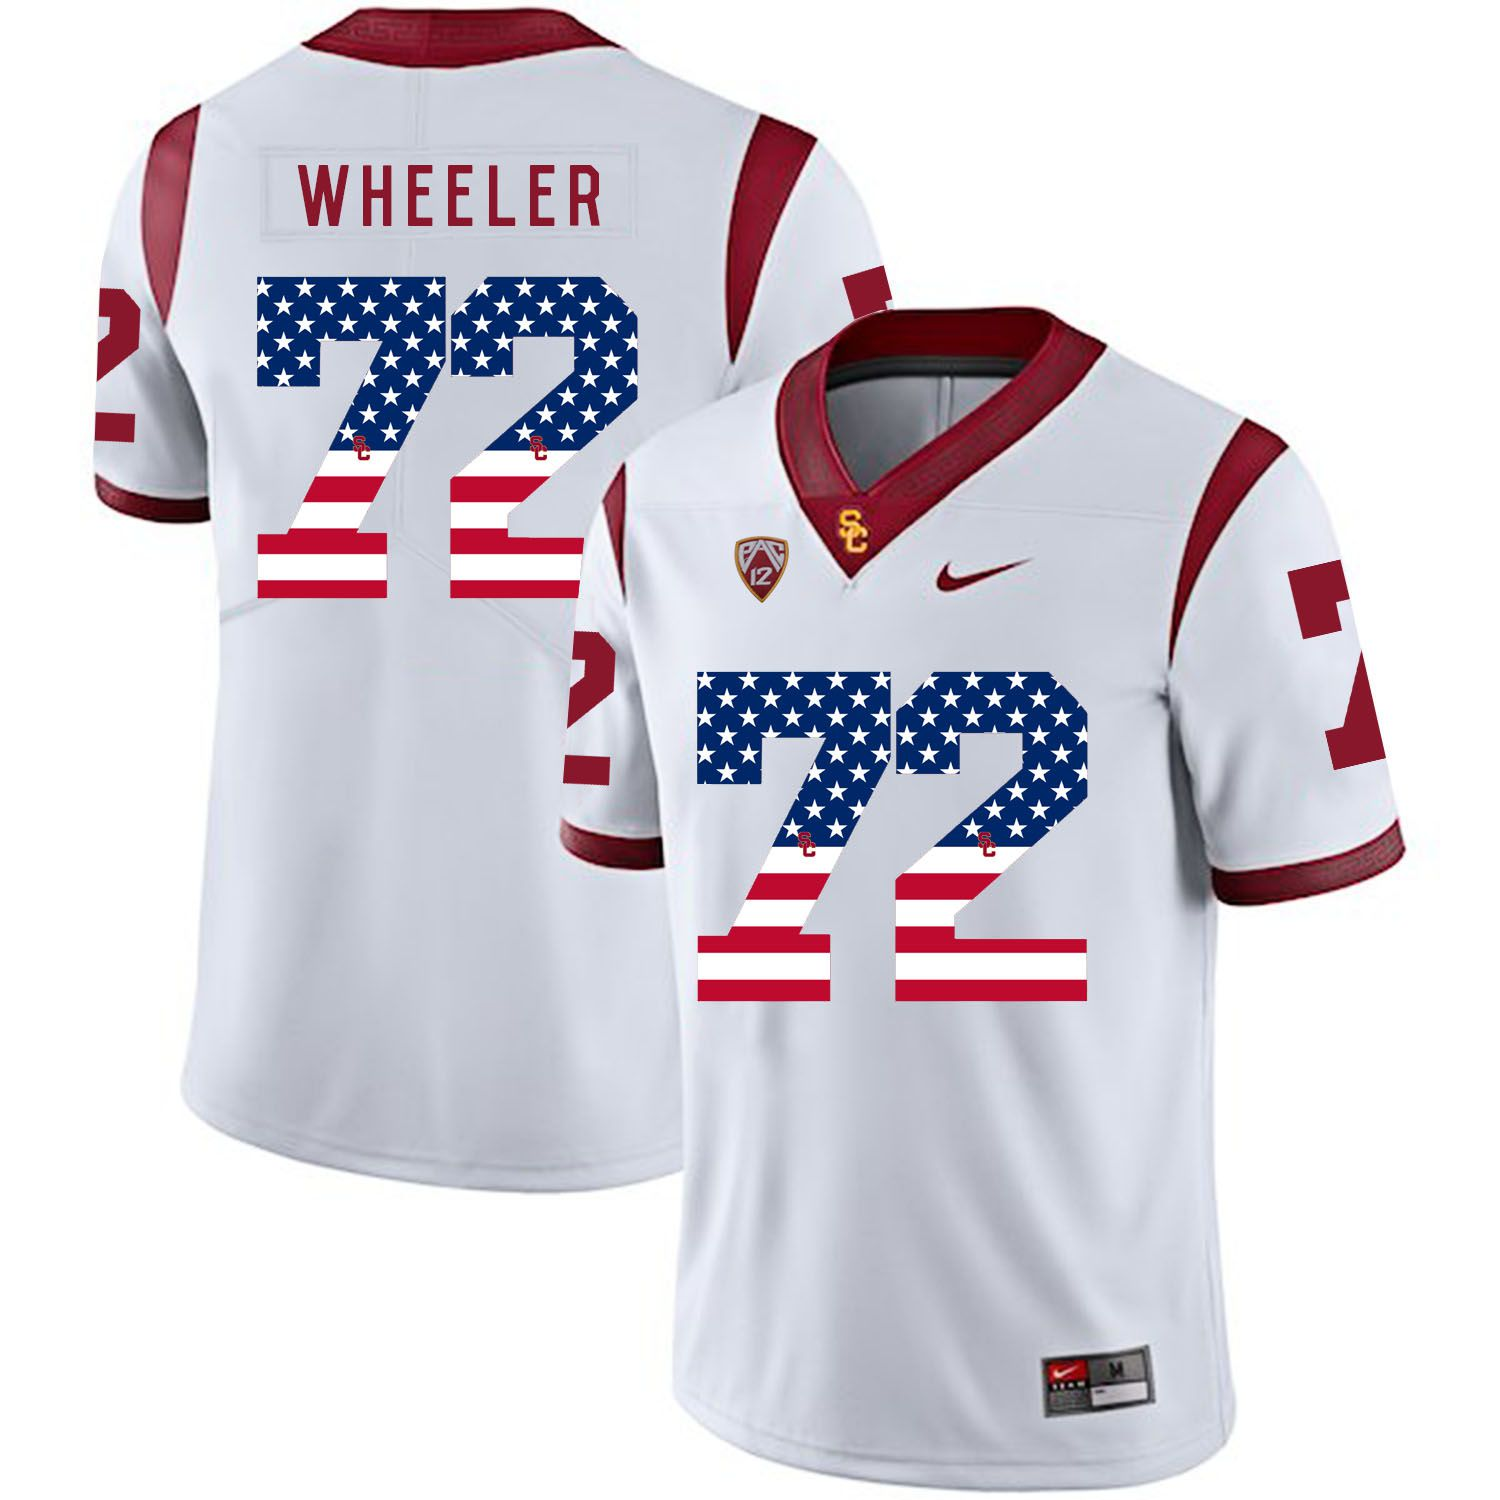 Men USC Trojans 72 Wheeler White Flag Customized NCAA Jerseys